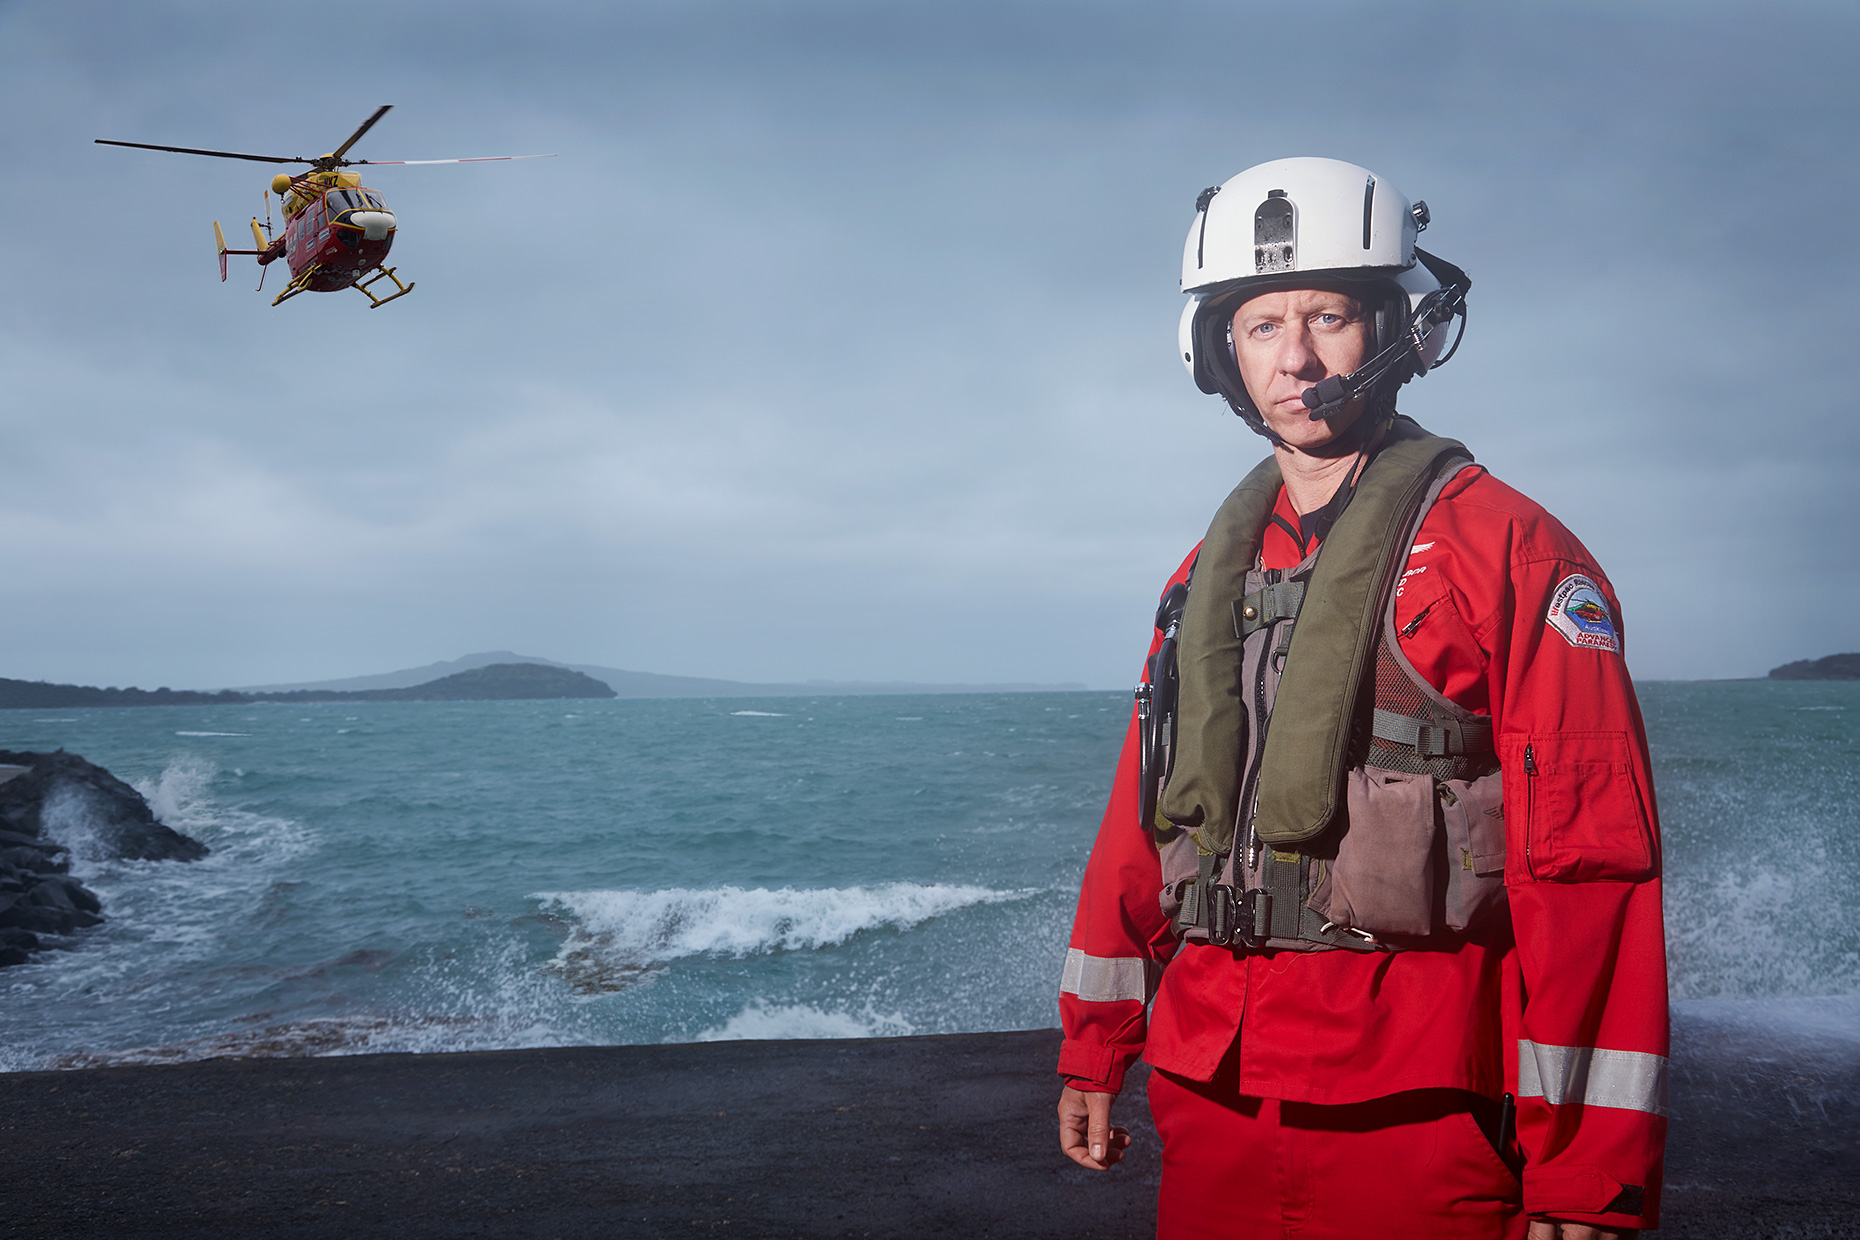 Stefan Gabor, Westpac Rescue Helicopter medic